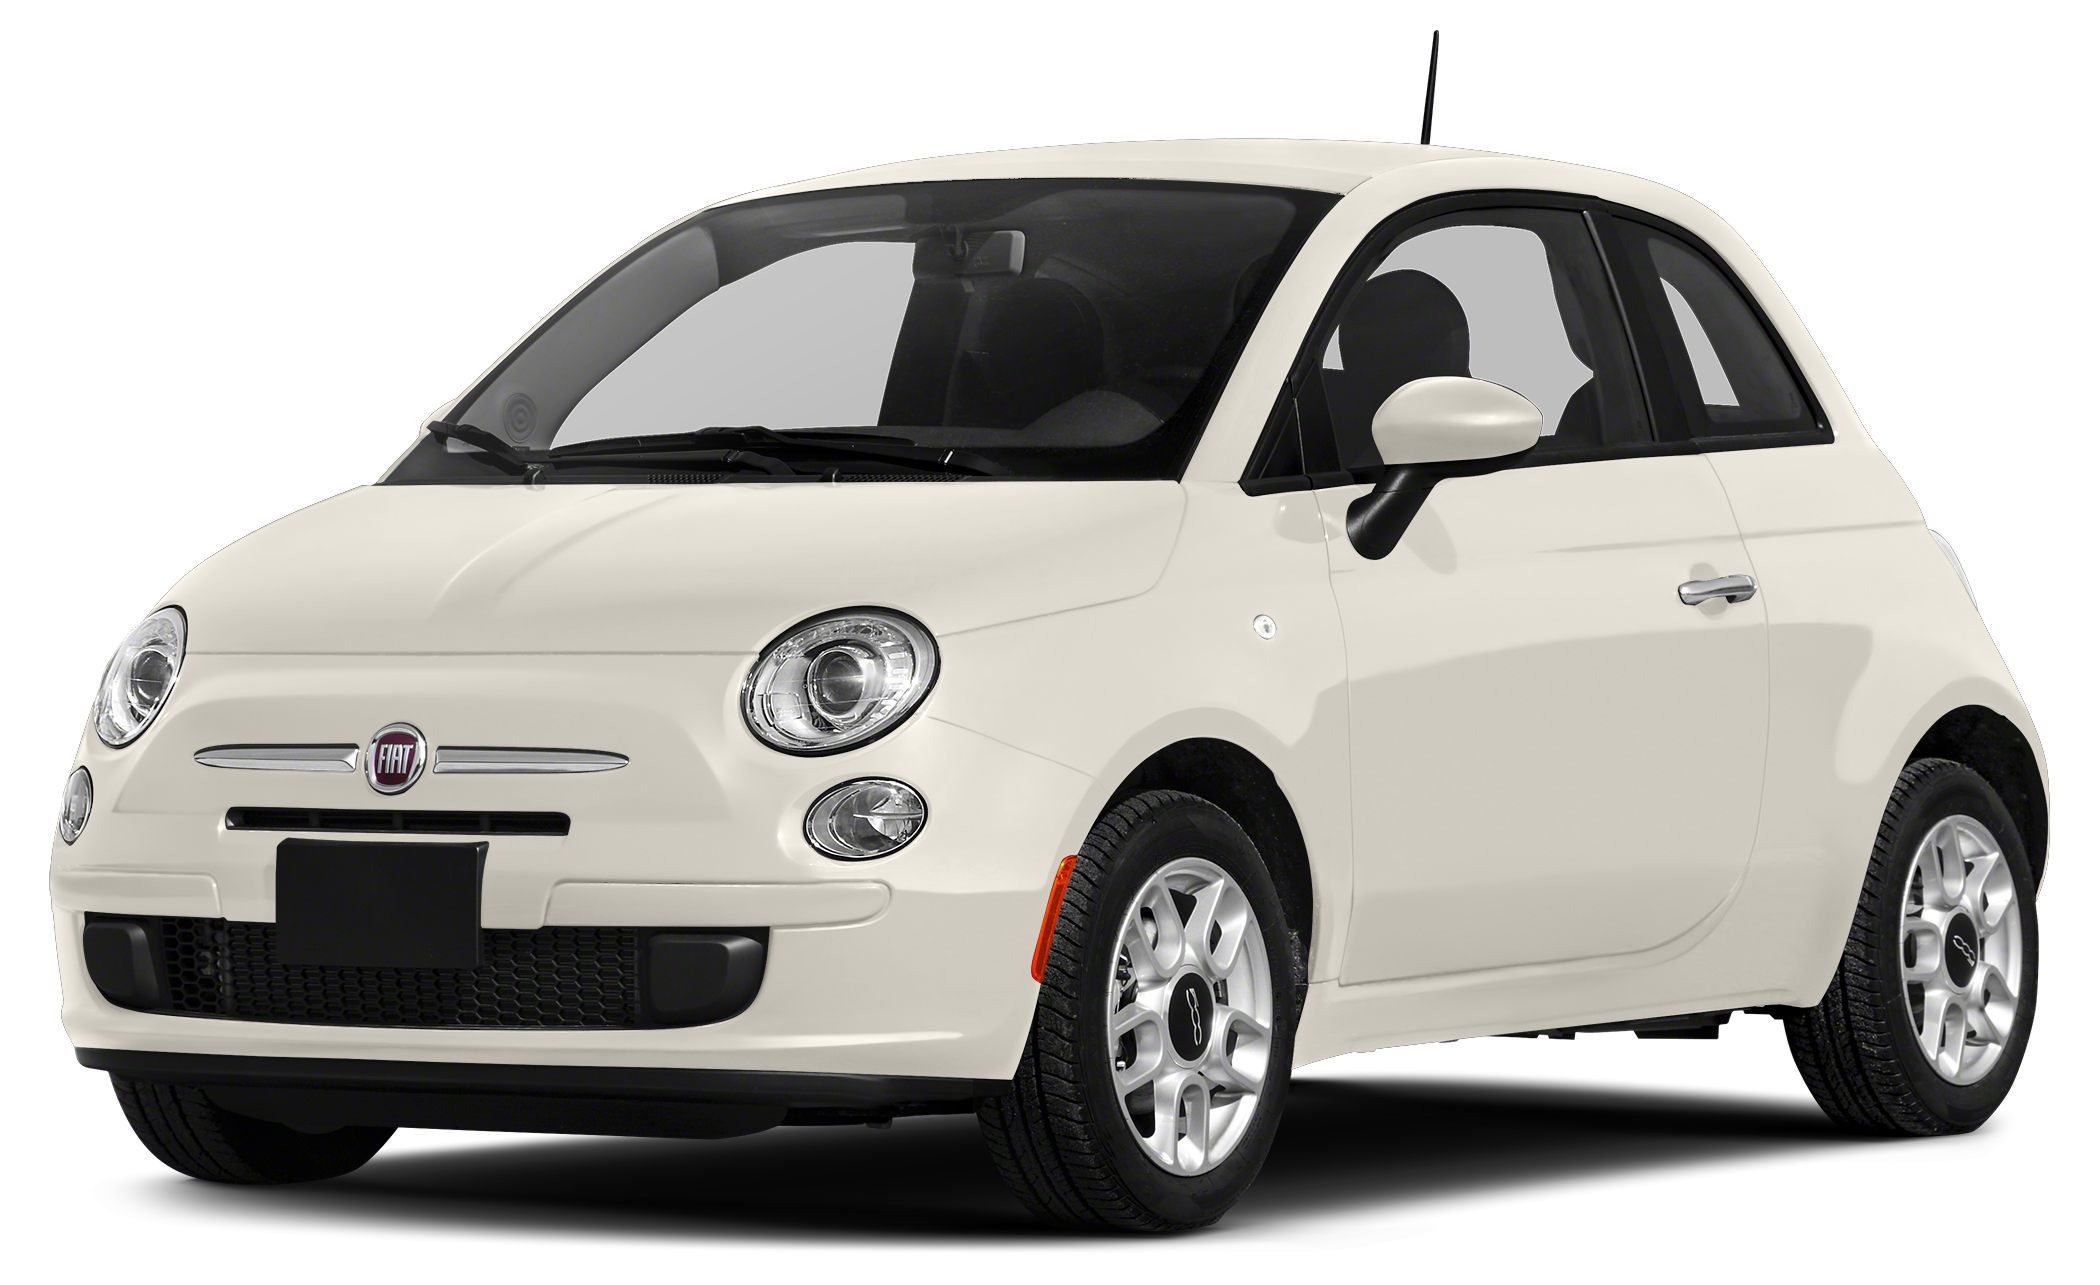 2015 FIAT 500 Pop Bonham Chrysler is pleased to be currently offering this 2015 FIAT 500 2dr HB Po